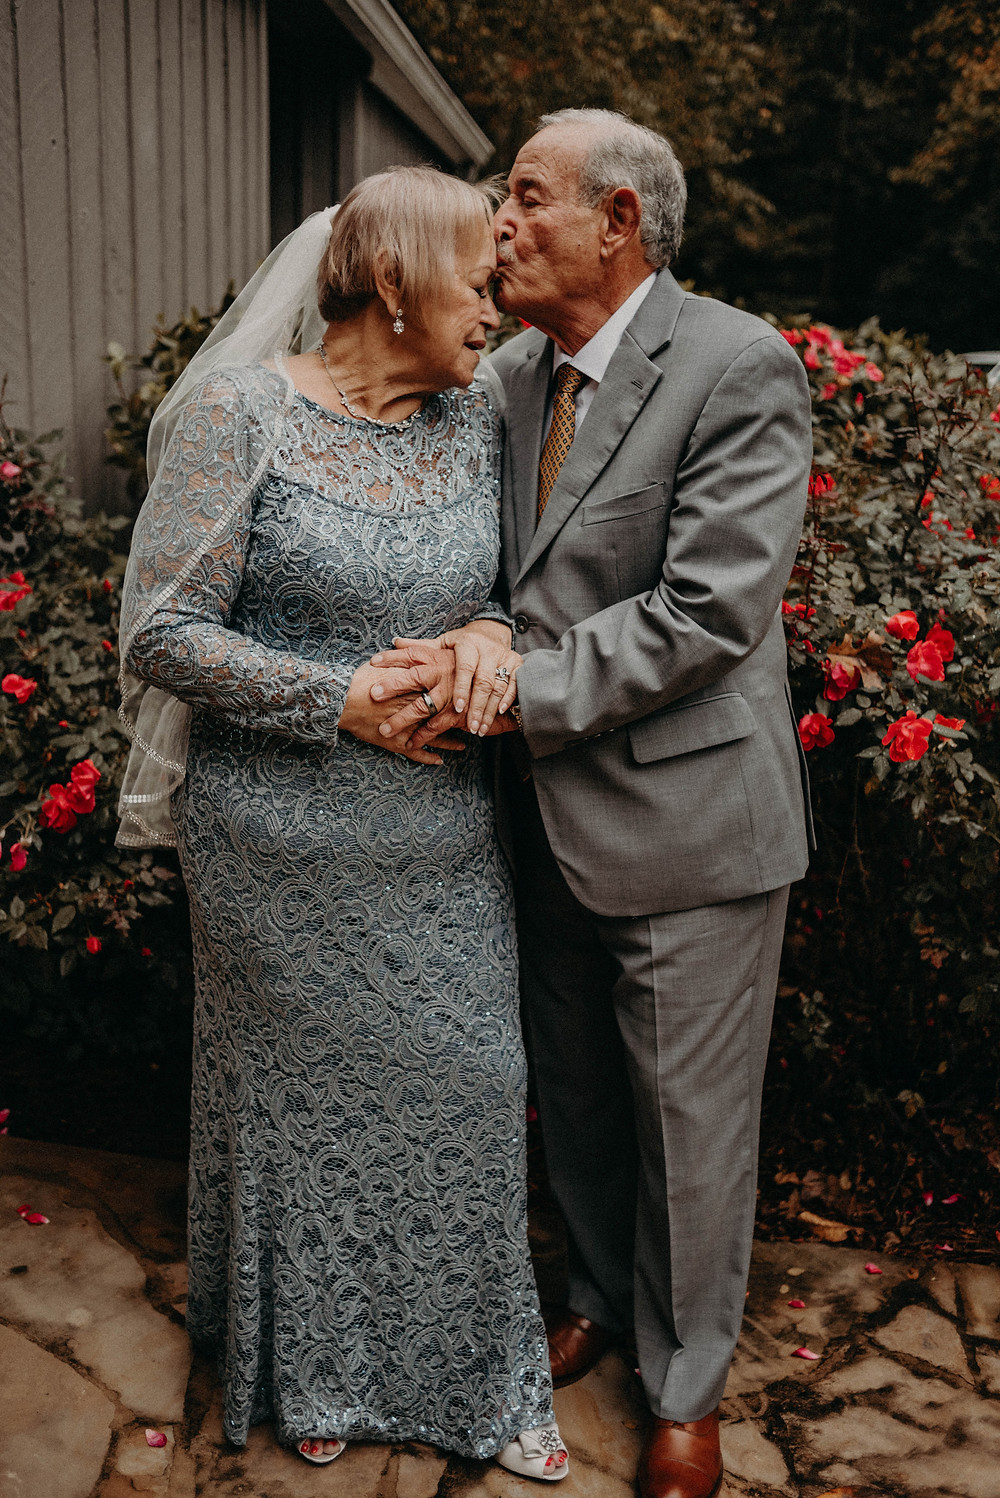 Elderly couple at their wedding